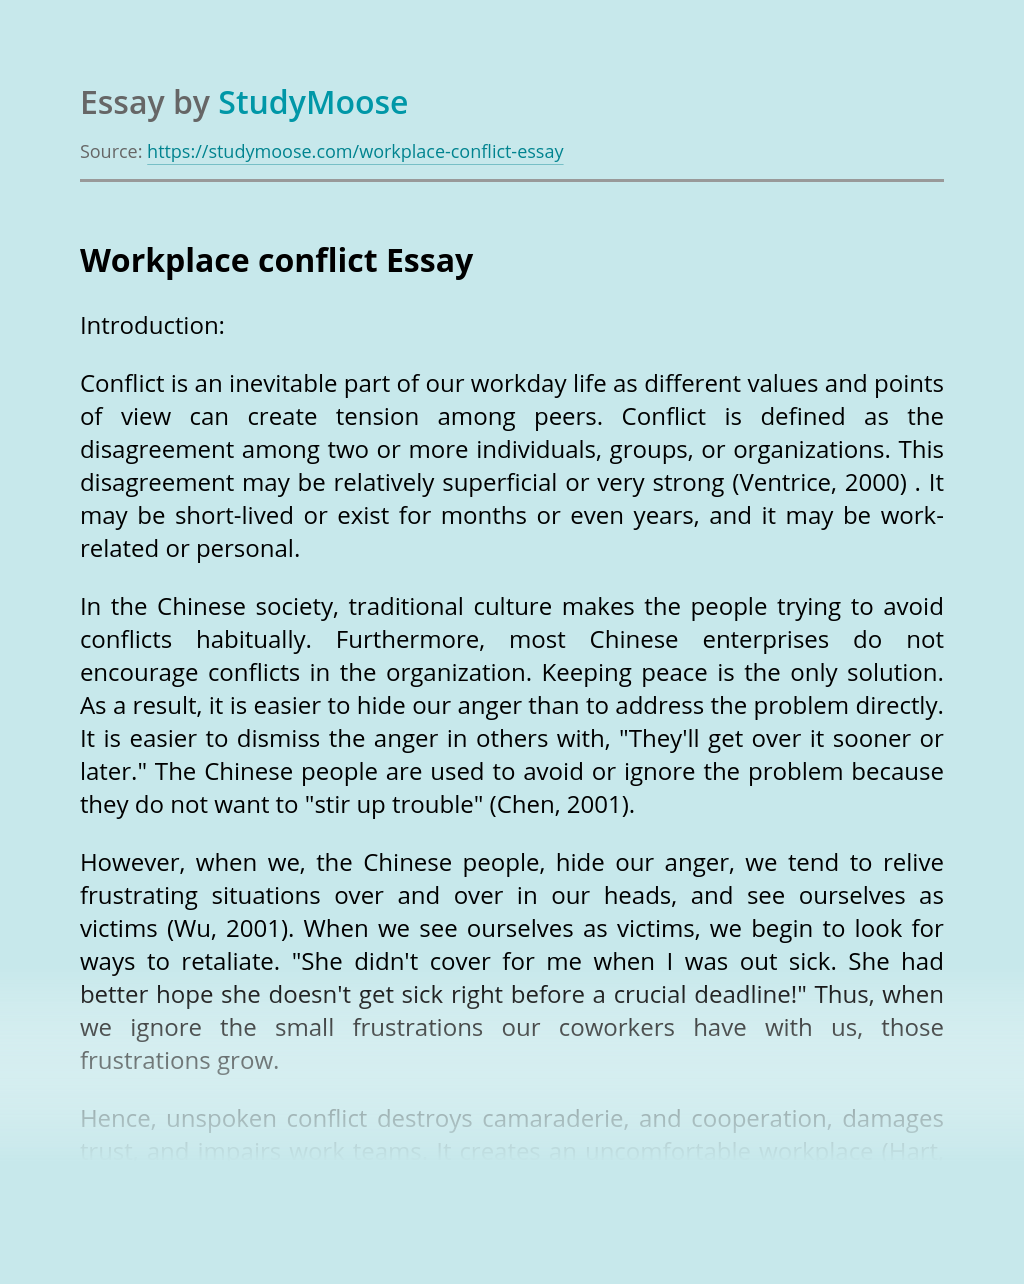 Essay on managing conflict in the workplace ib biology extended essay topics